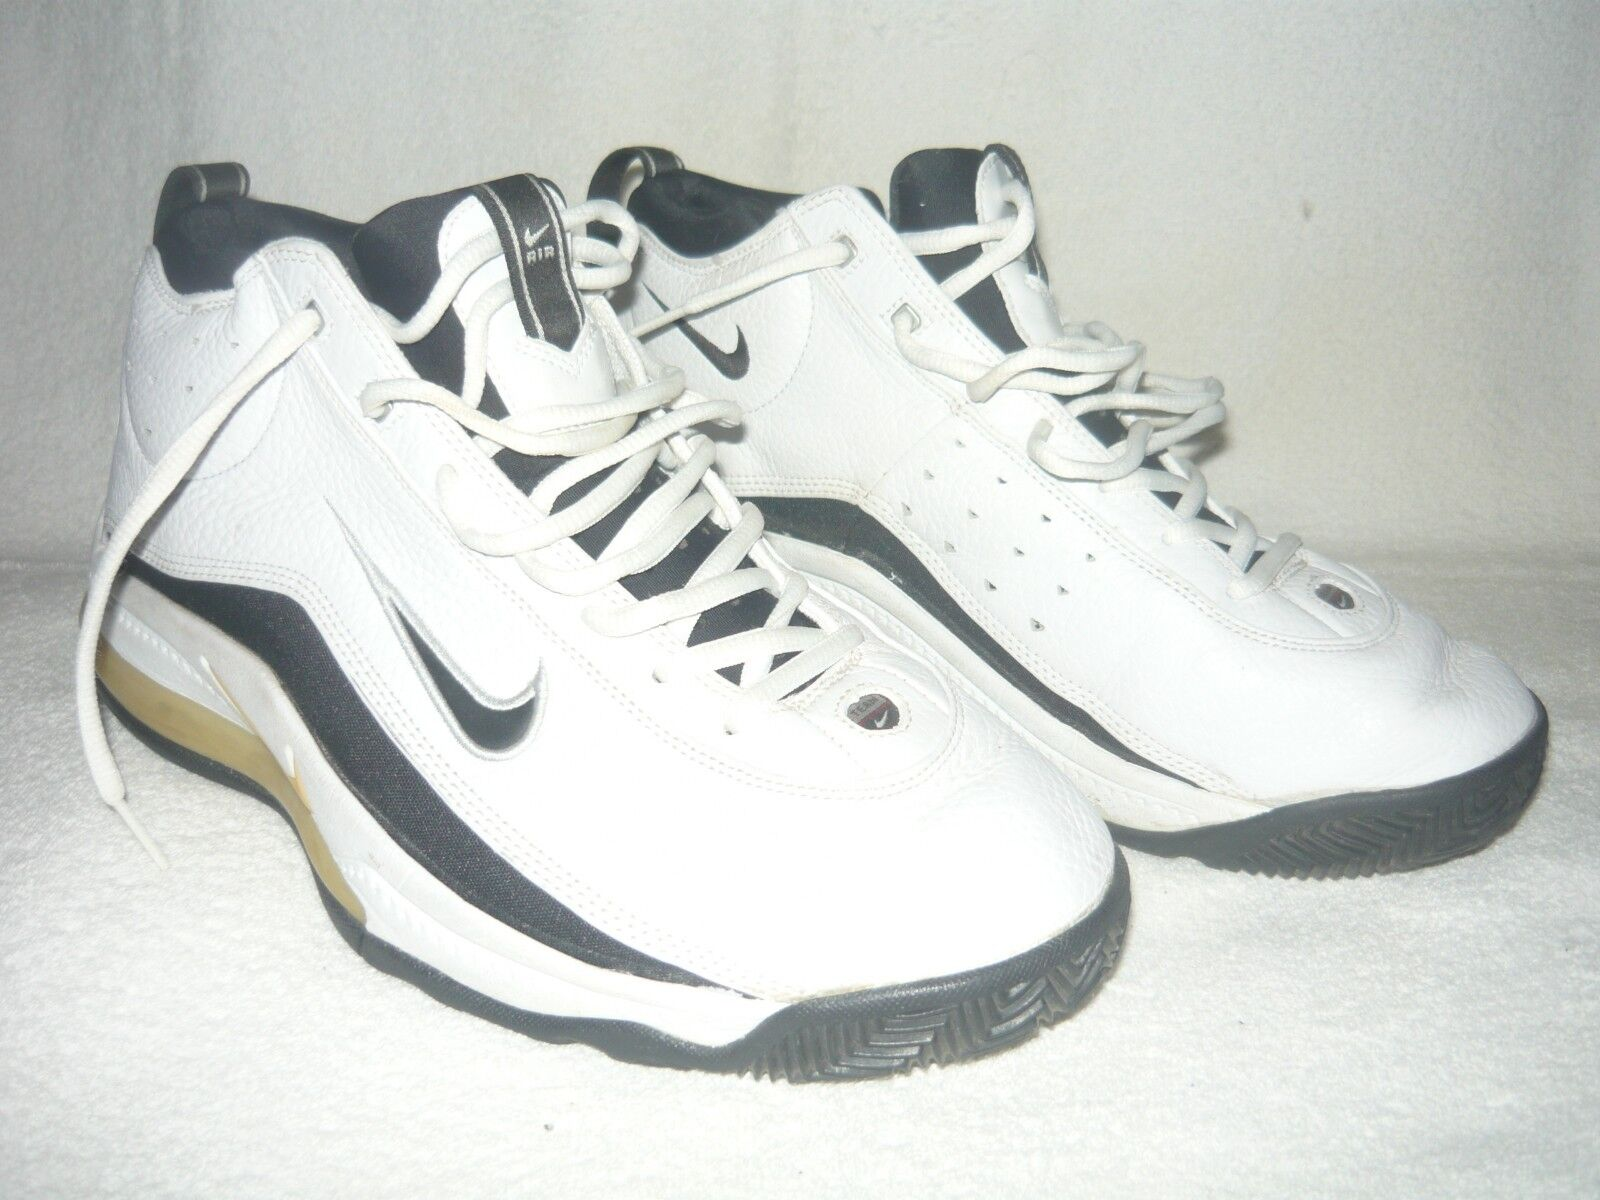 Nike Air Team Max Zoom II 2 139363-101 size 12 White-Black 1999 original